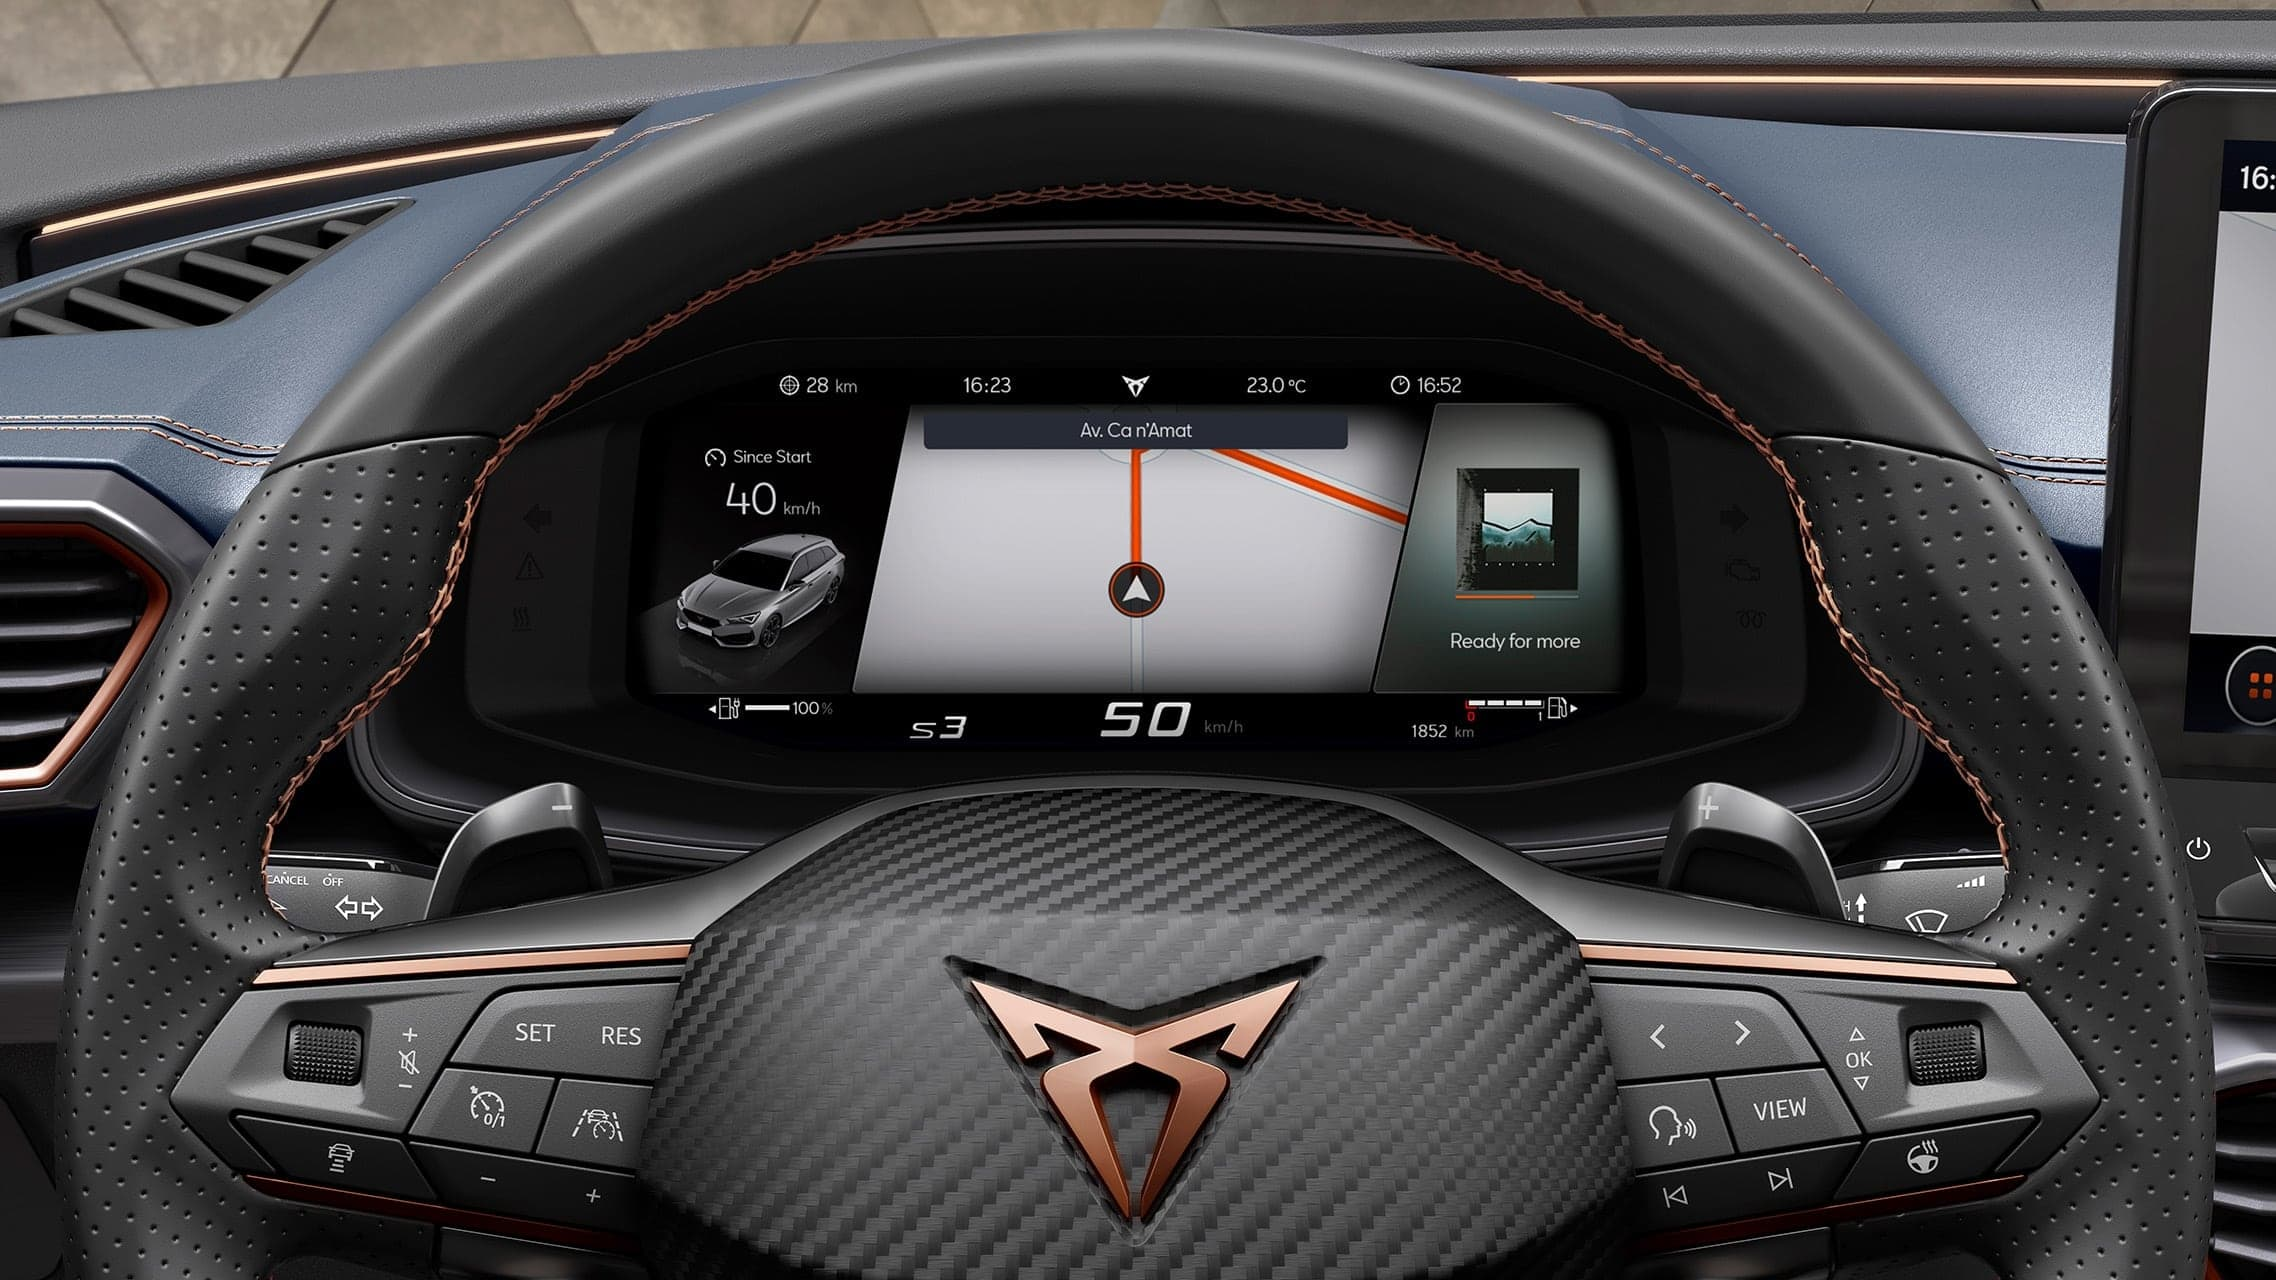 new CUPRA Leon Estate e-HYBRID Family Sports Car interior view of digital cockpit with voice command infotainment system